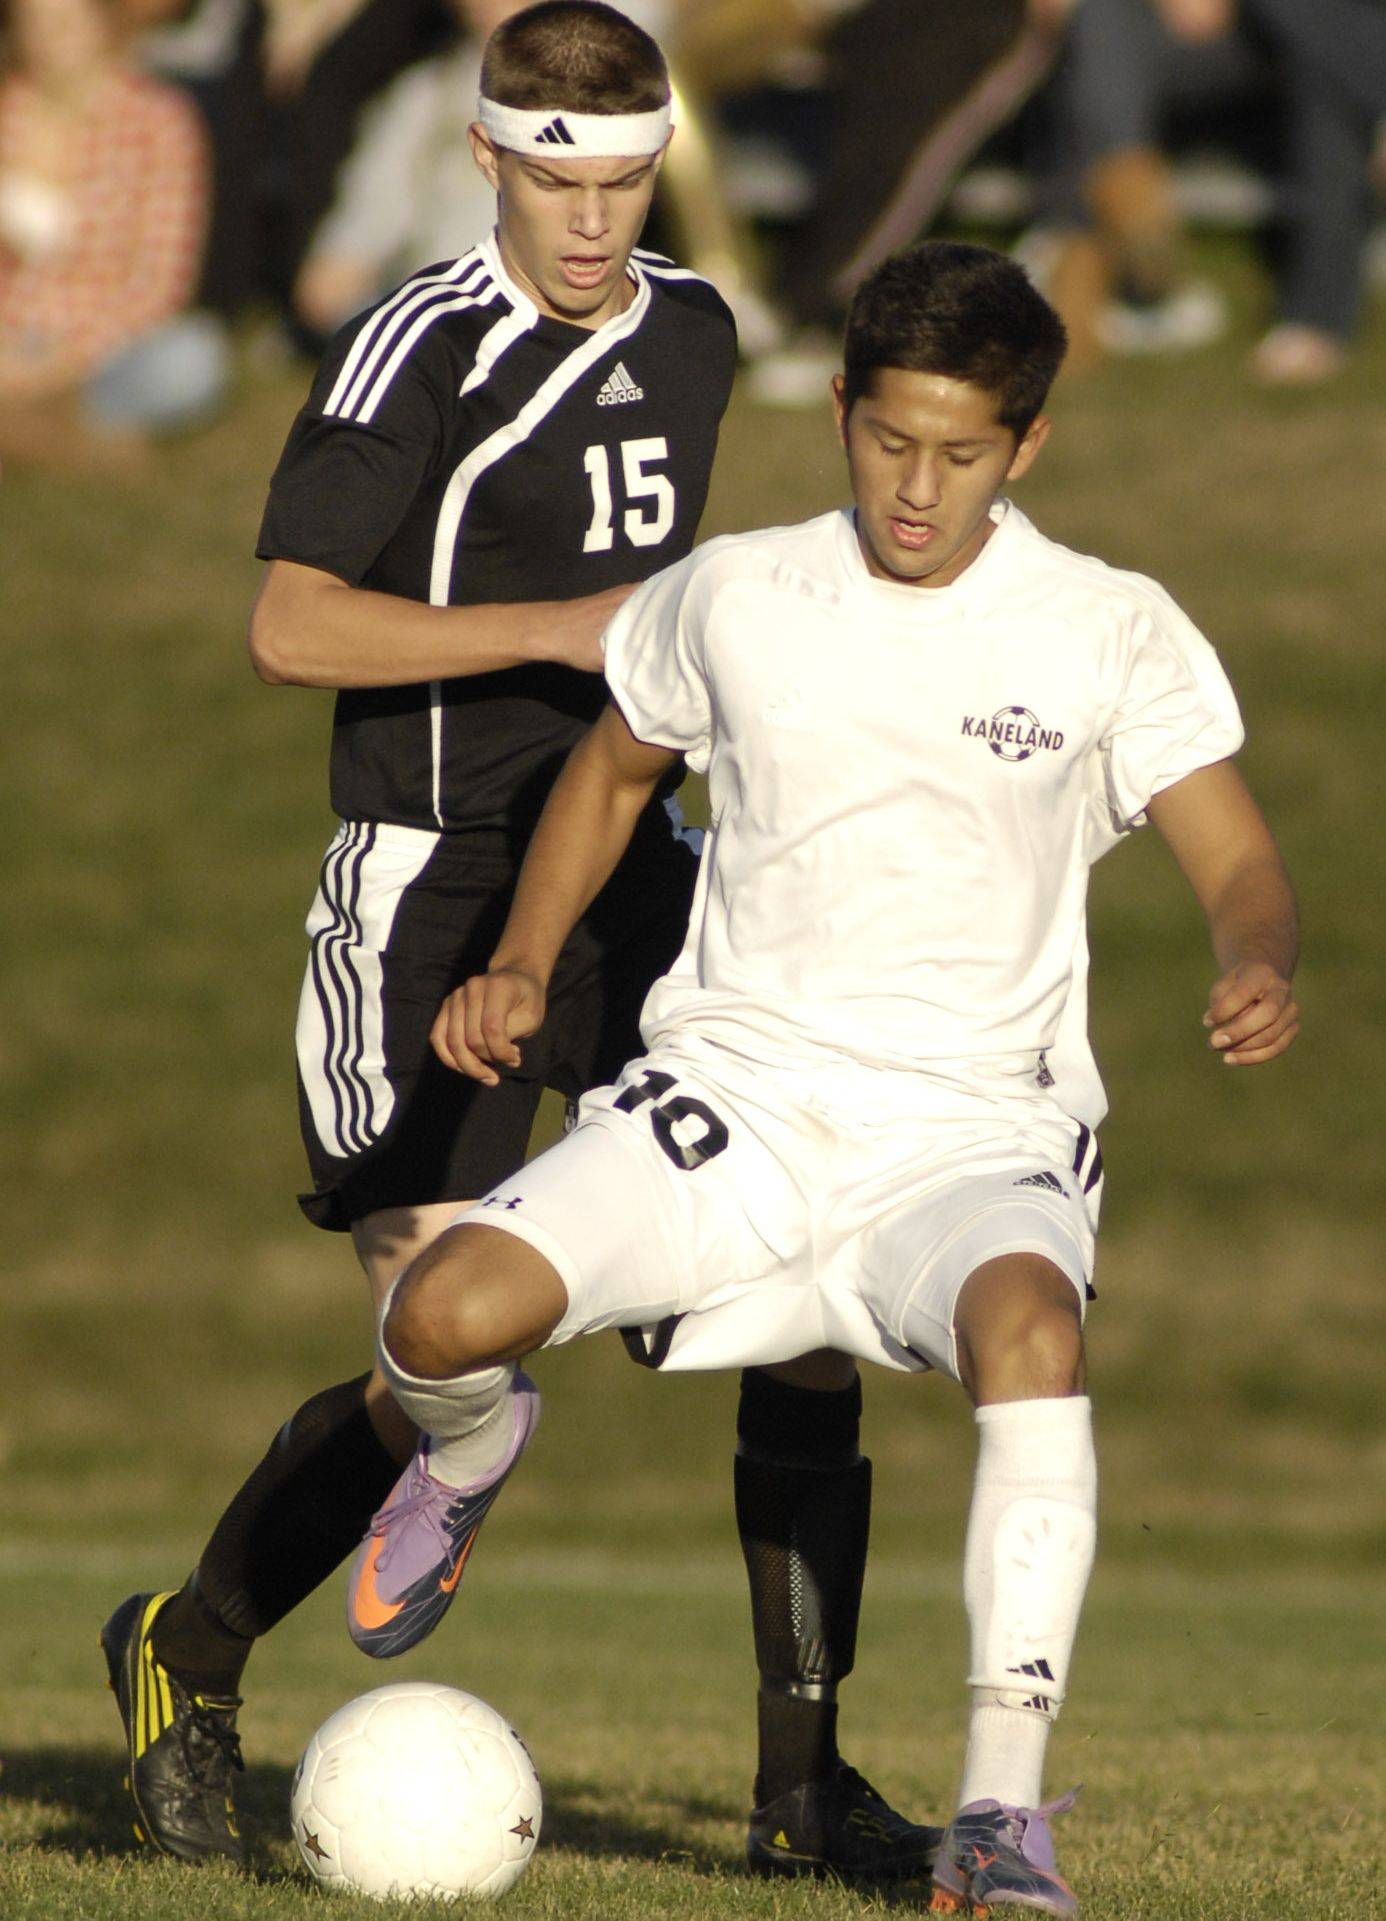 Jordan Escobedo, right, is one of the returnees Kaneland is counting on for a winning season.